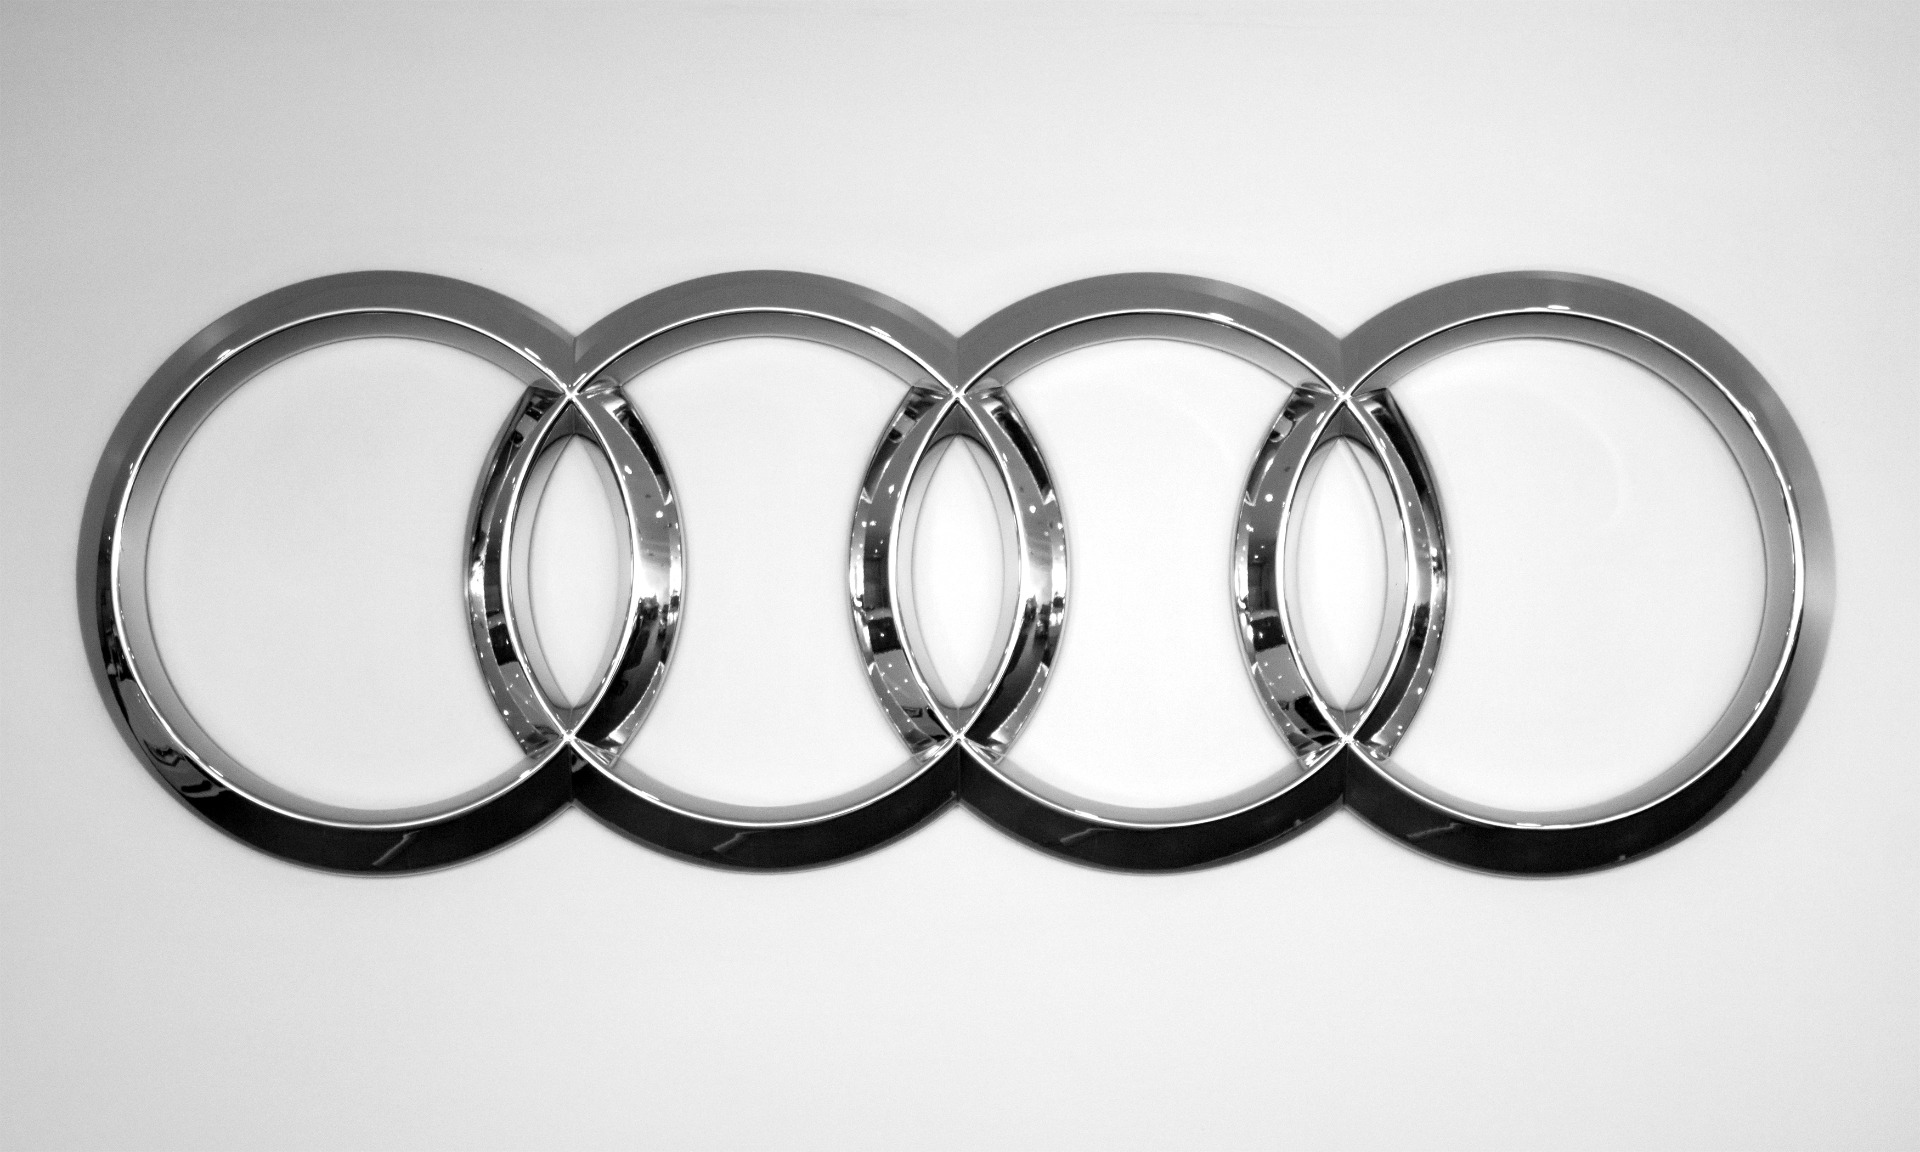 where to buy an audi battery for my car